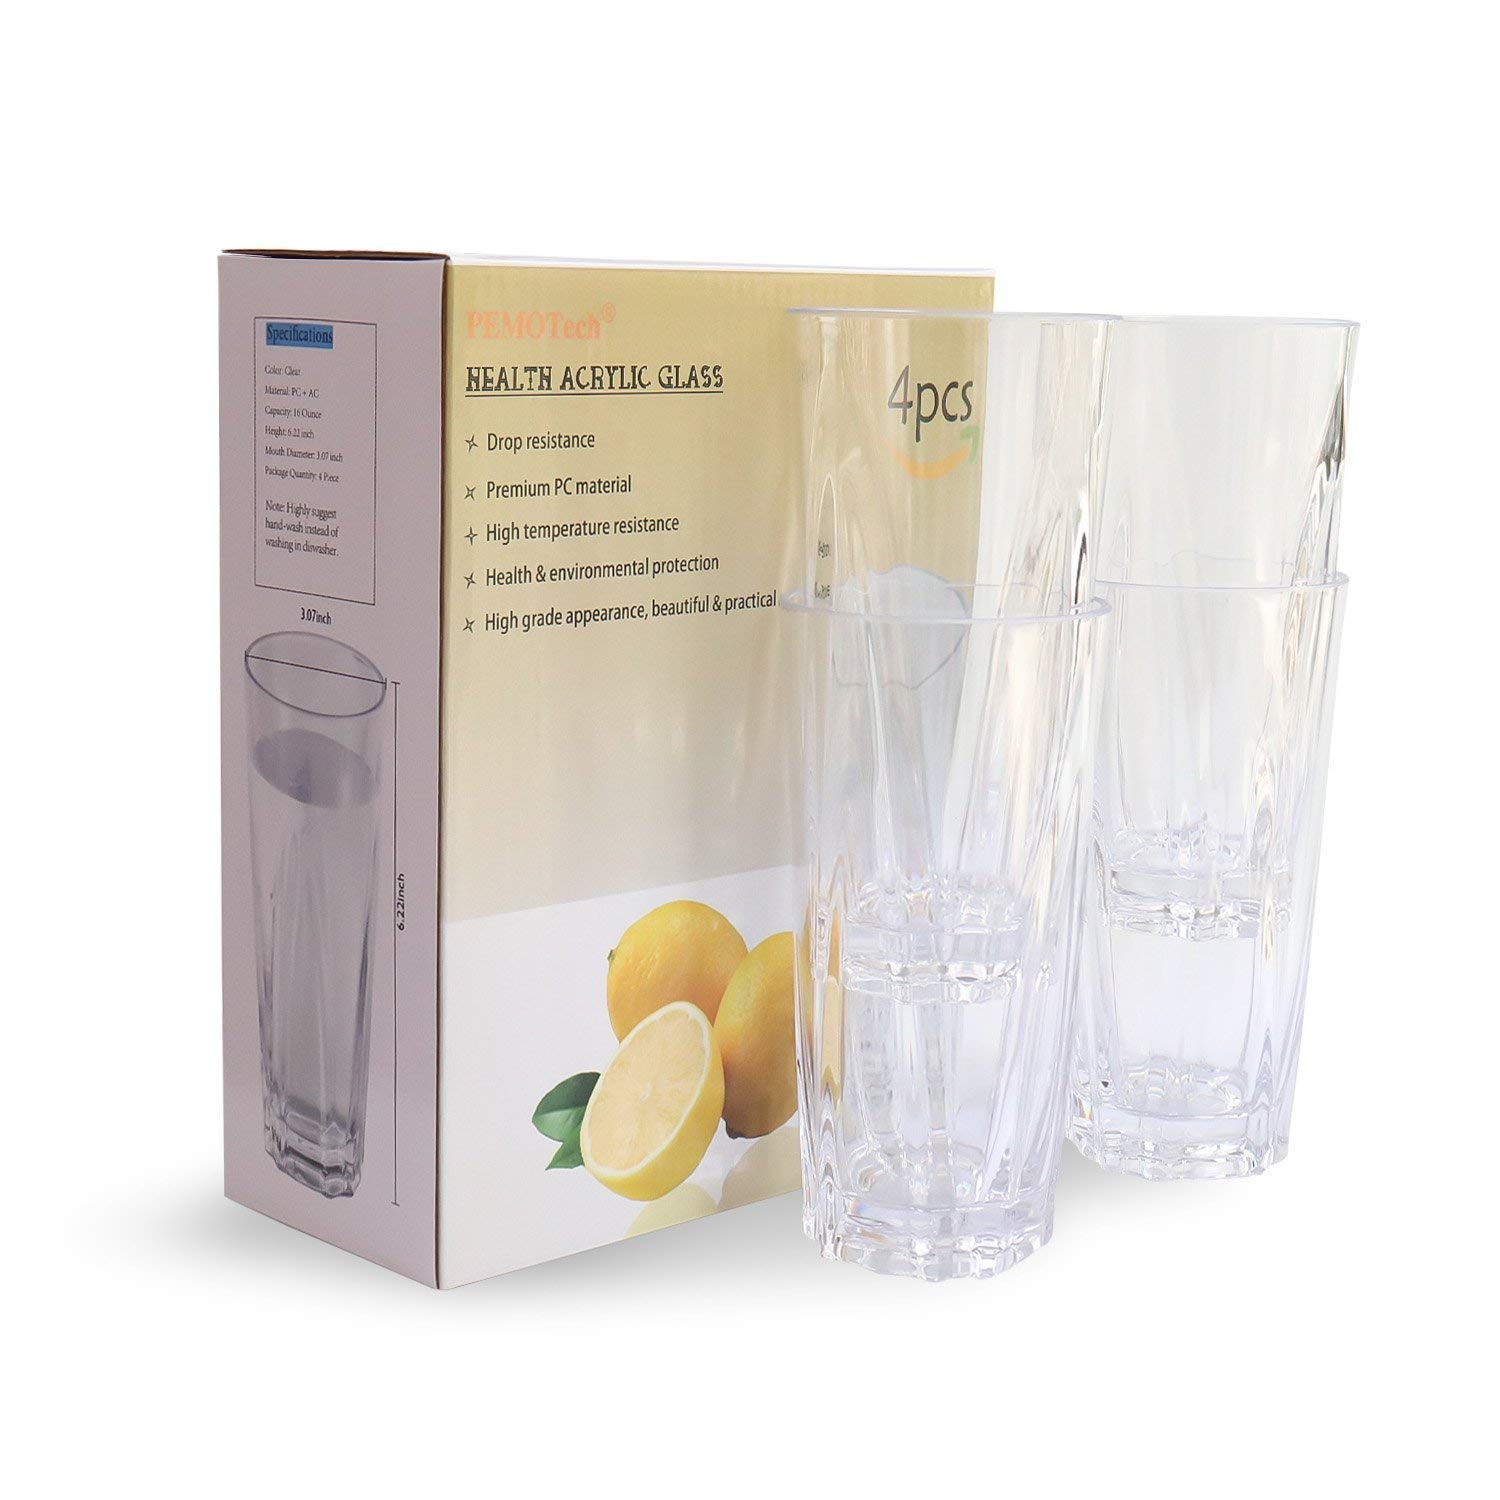 Restaurant Quality Plastic Water Cups Plastic Drinking Glasses,PEMOTech 4 Pack 9 Oz Clear Acrylic Water Tumblers Unbreakable Water Glasses for Kids,100/% BPA-free,Shatterproof SYNCHKG112380